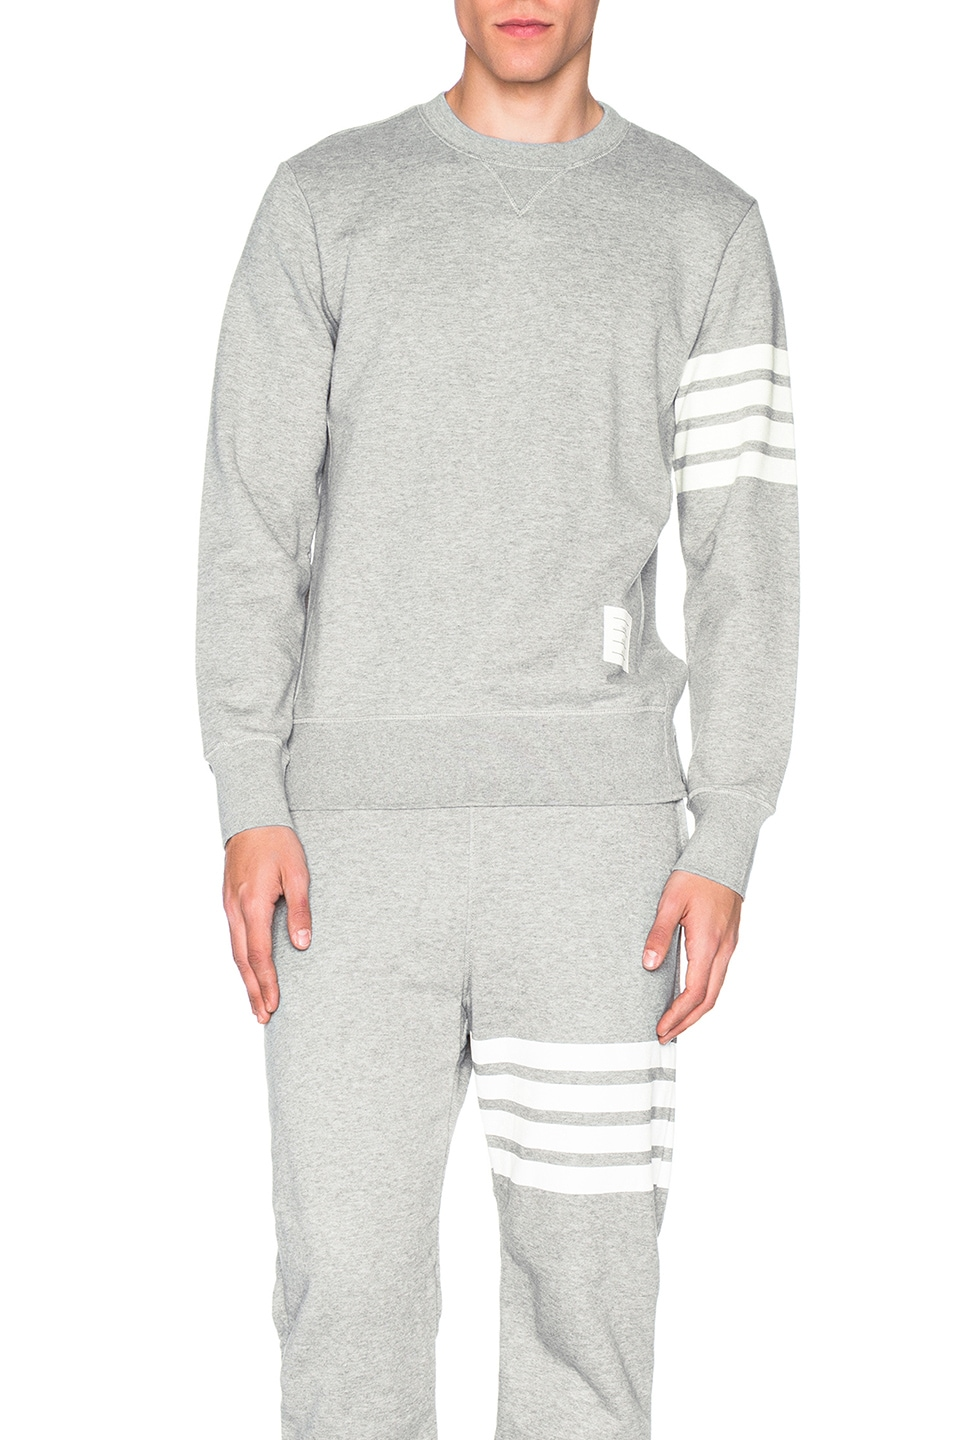 THOM BROWNE Slim-Fit Striped Loopback Cotton-Jersey Sweatshirt, Gray